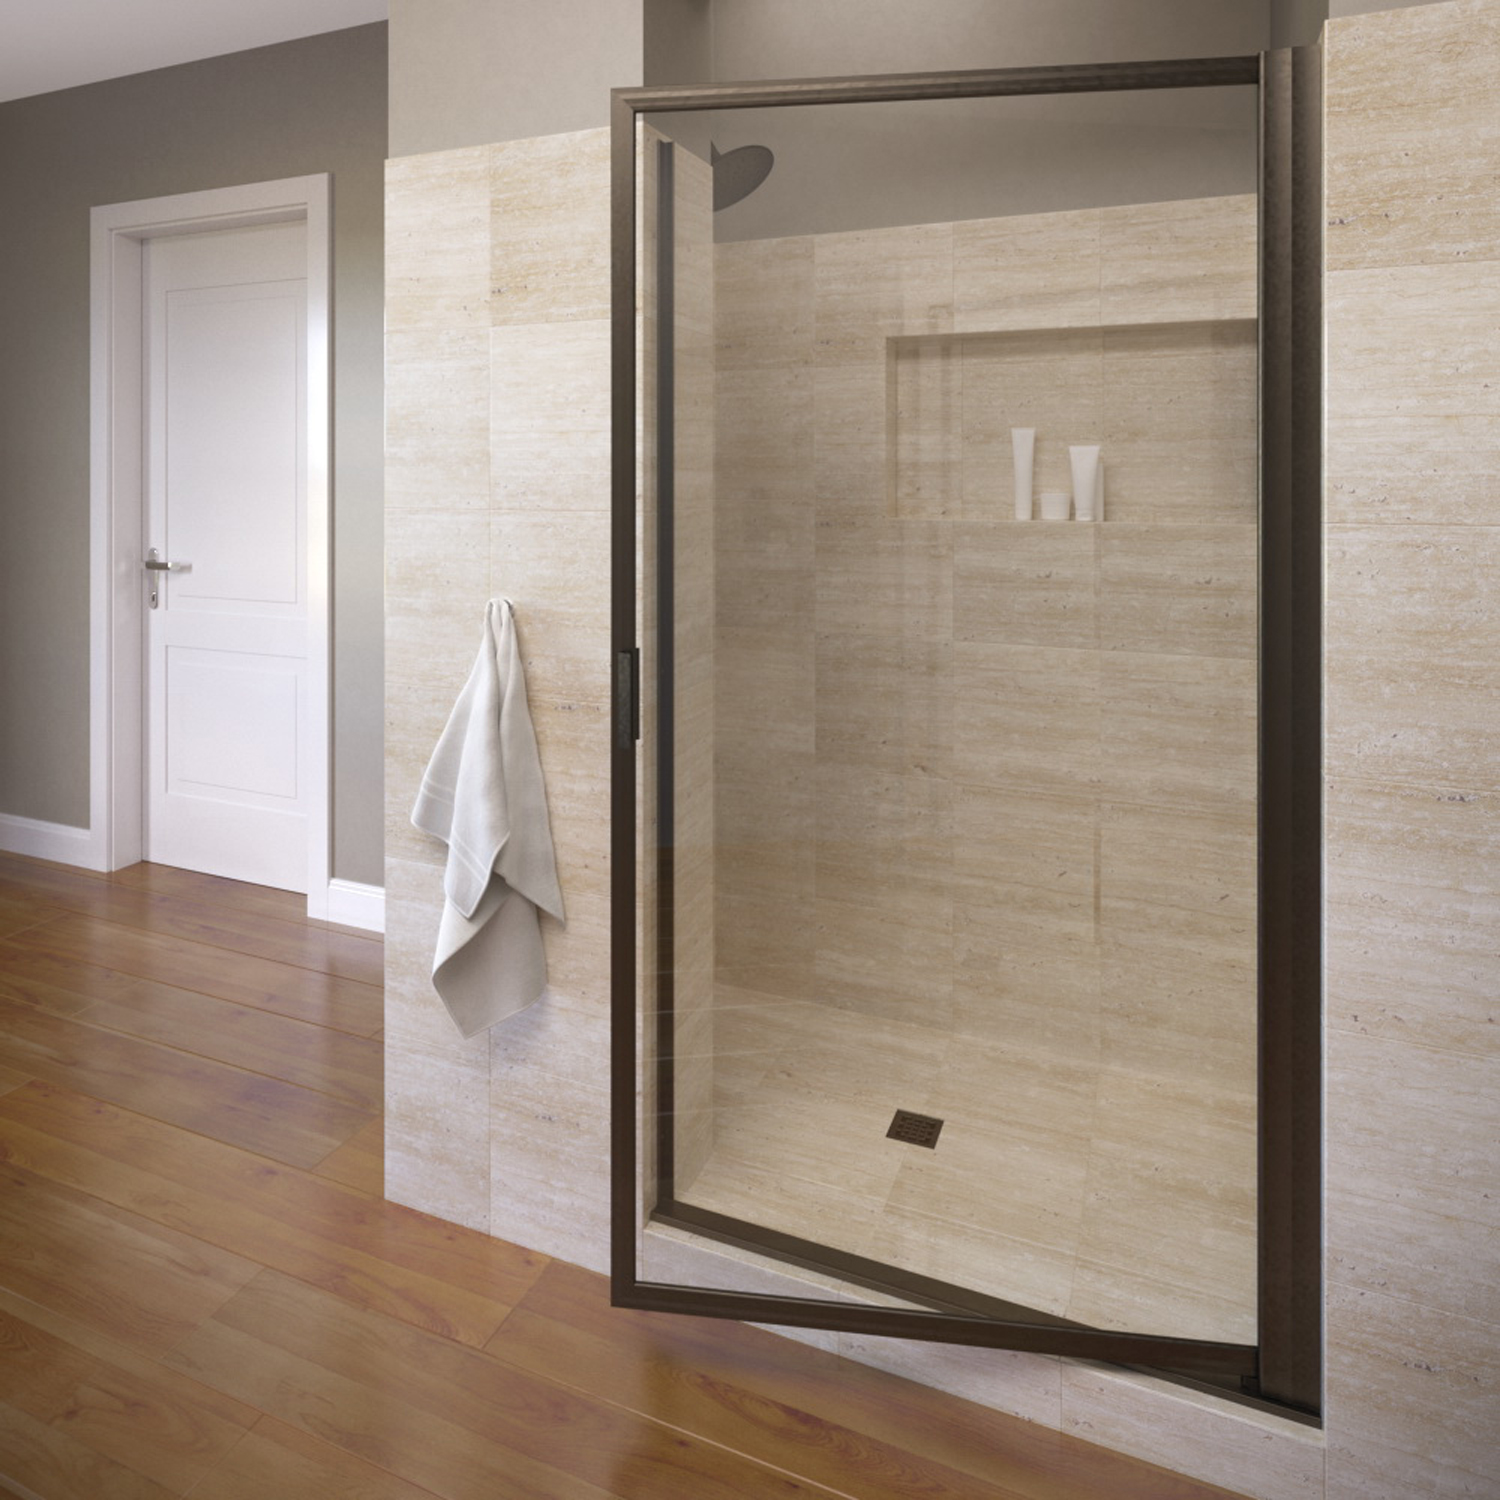 swing door h product glass en from room vetro by architonic doors albed level